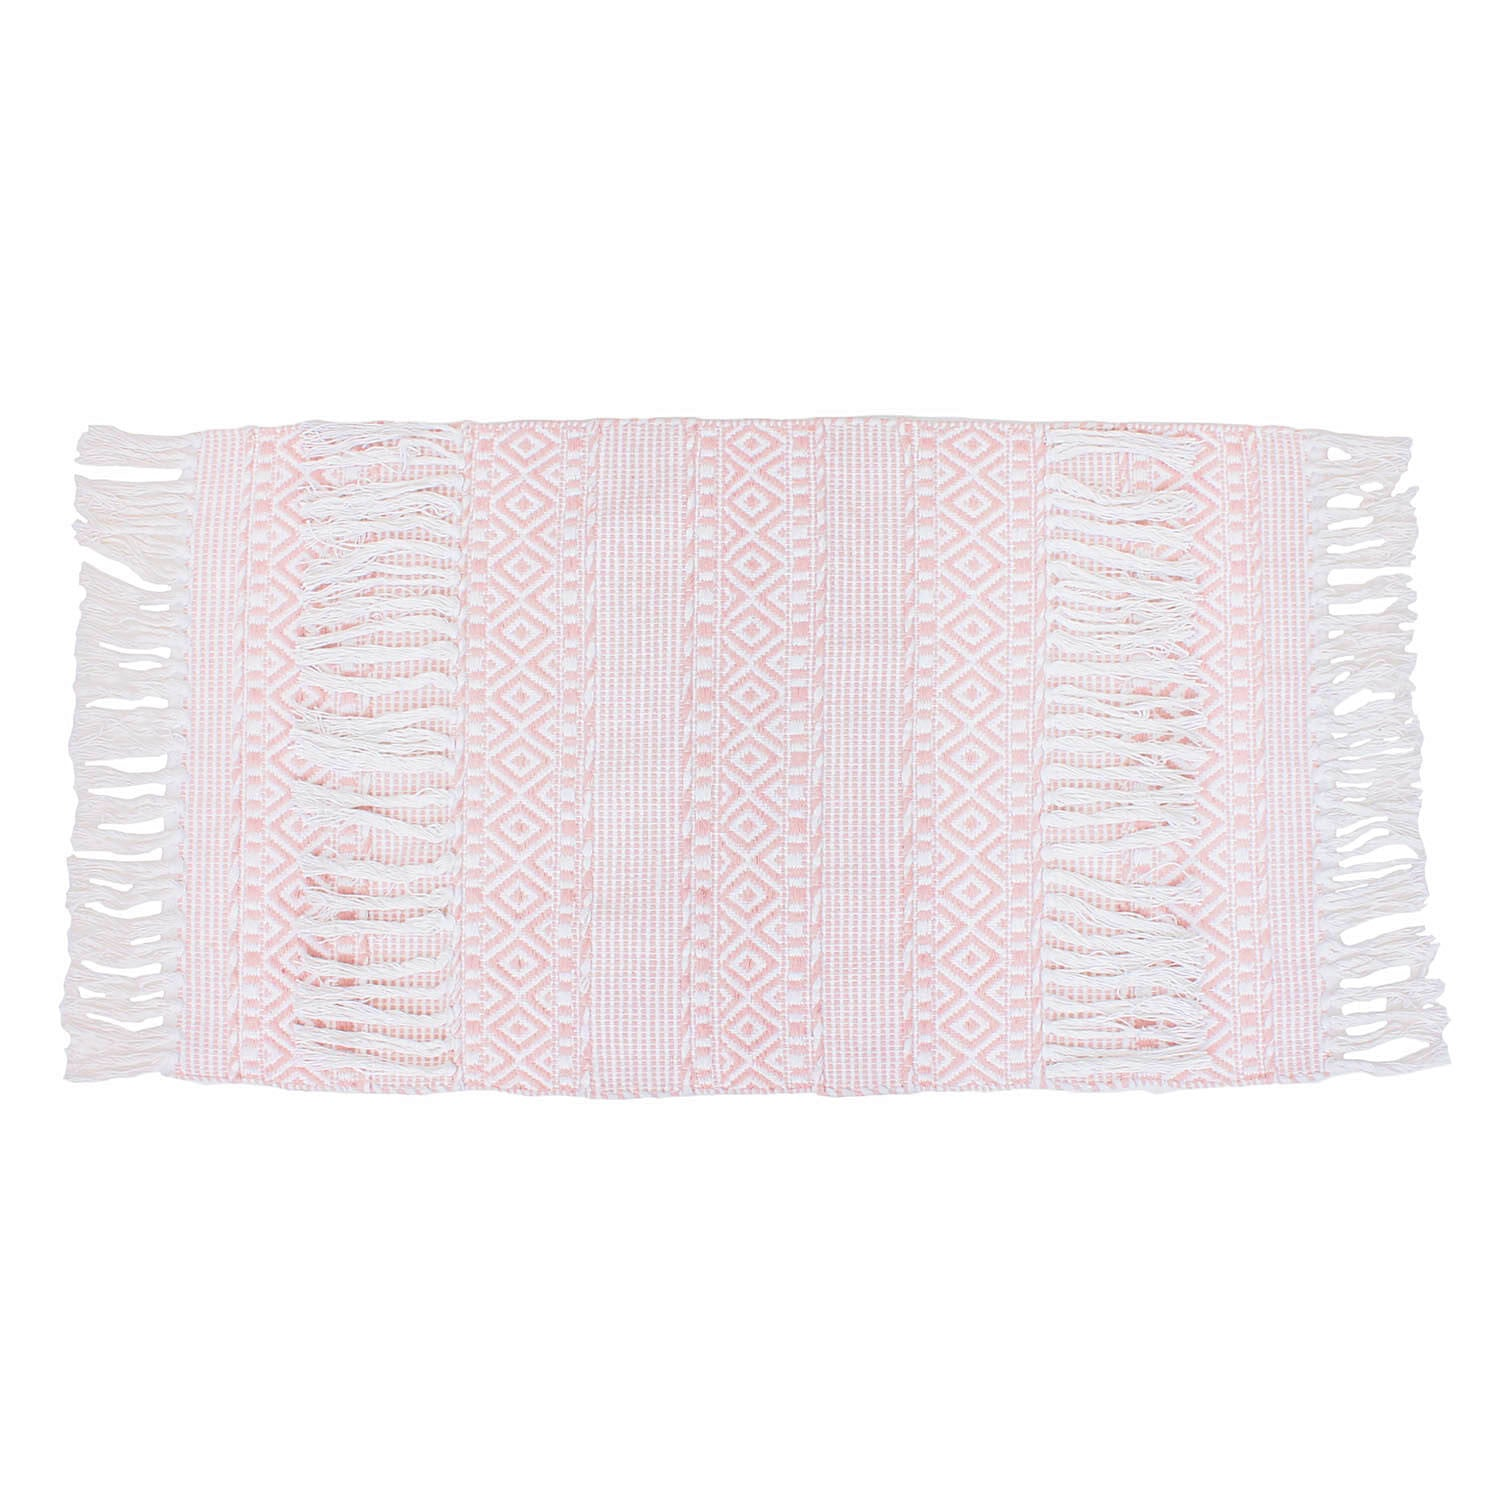 Textured Hand Woven Tassel Accent Rug - Rose Smoke